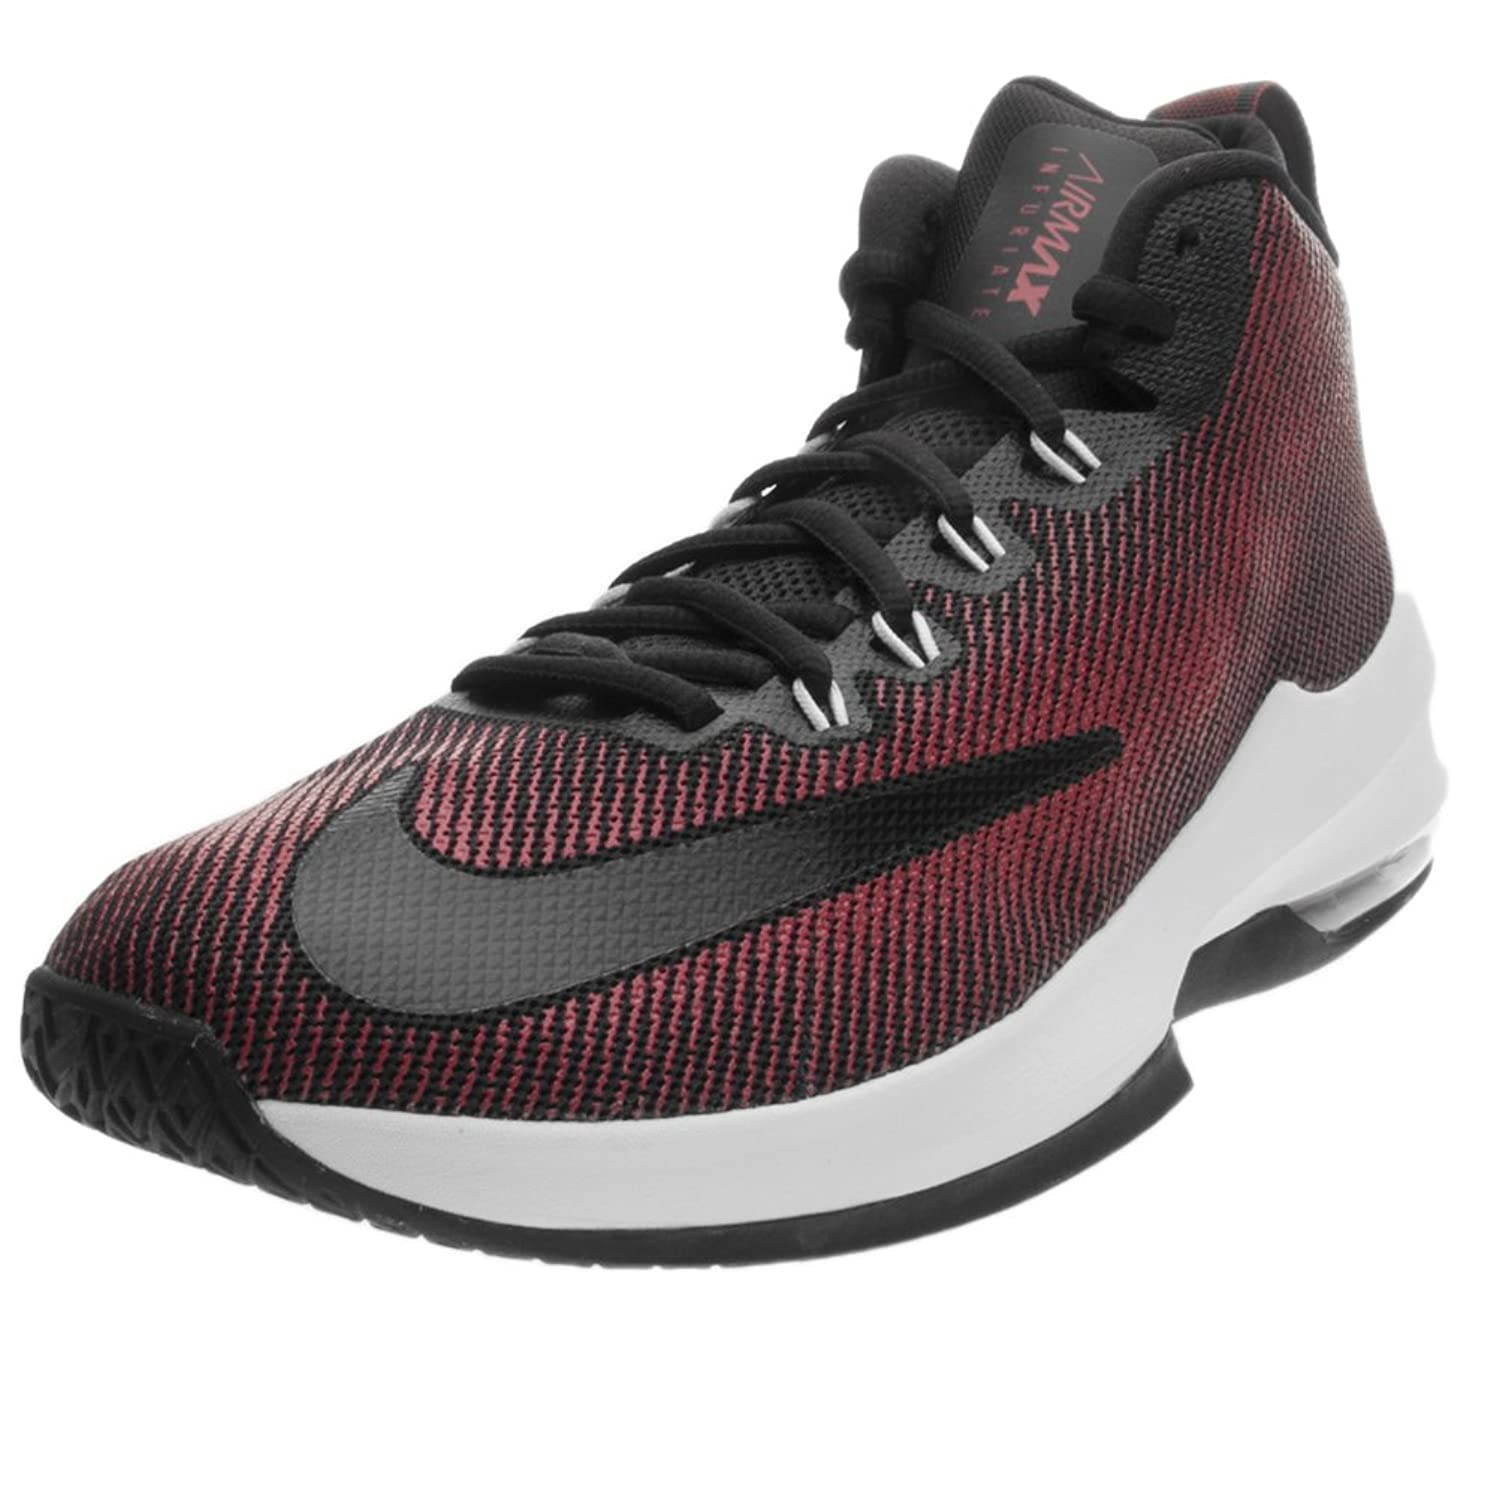 59db7afcbb 70%OFF Nike Nike Air Max Infuriate Mid, Chaussures spécial basket-ball pour